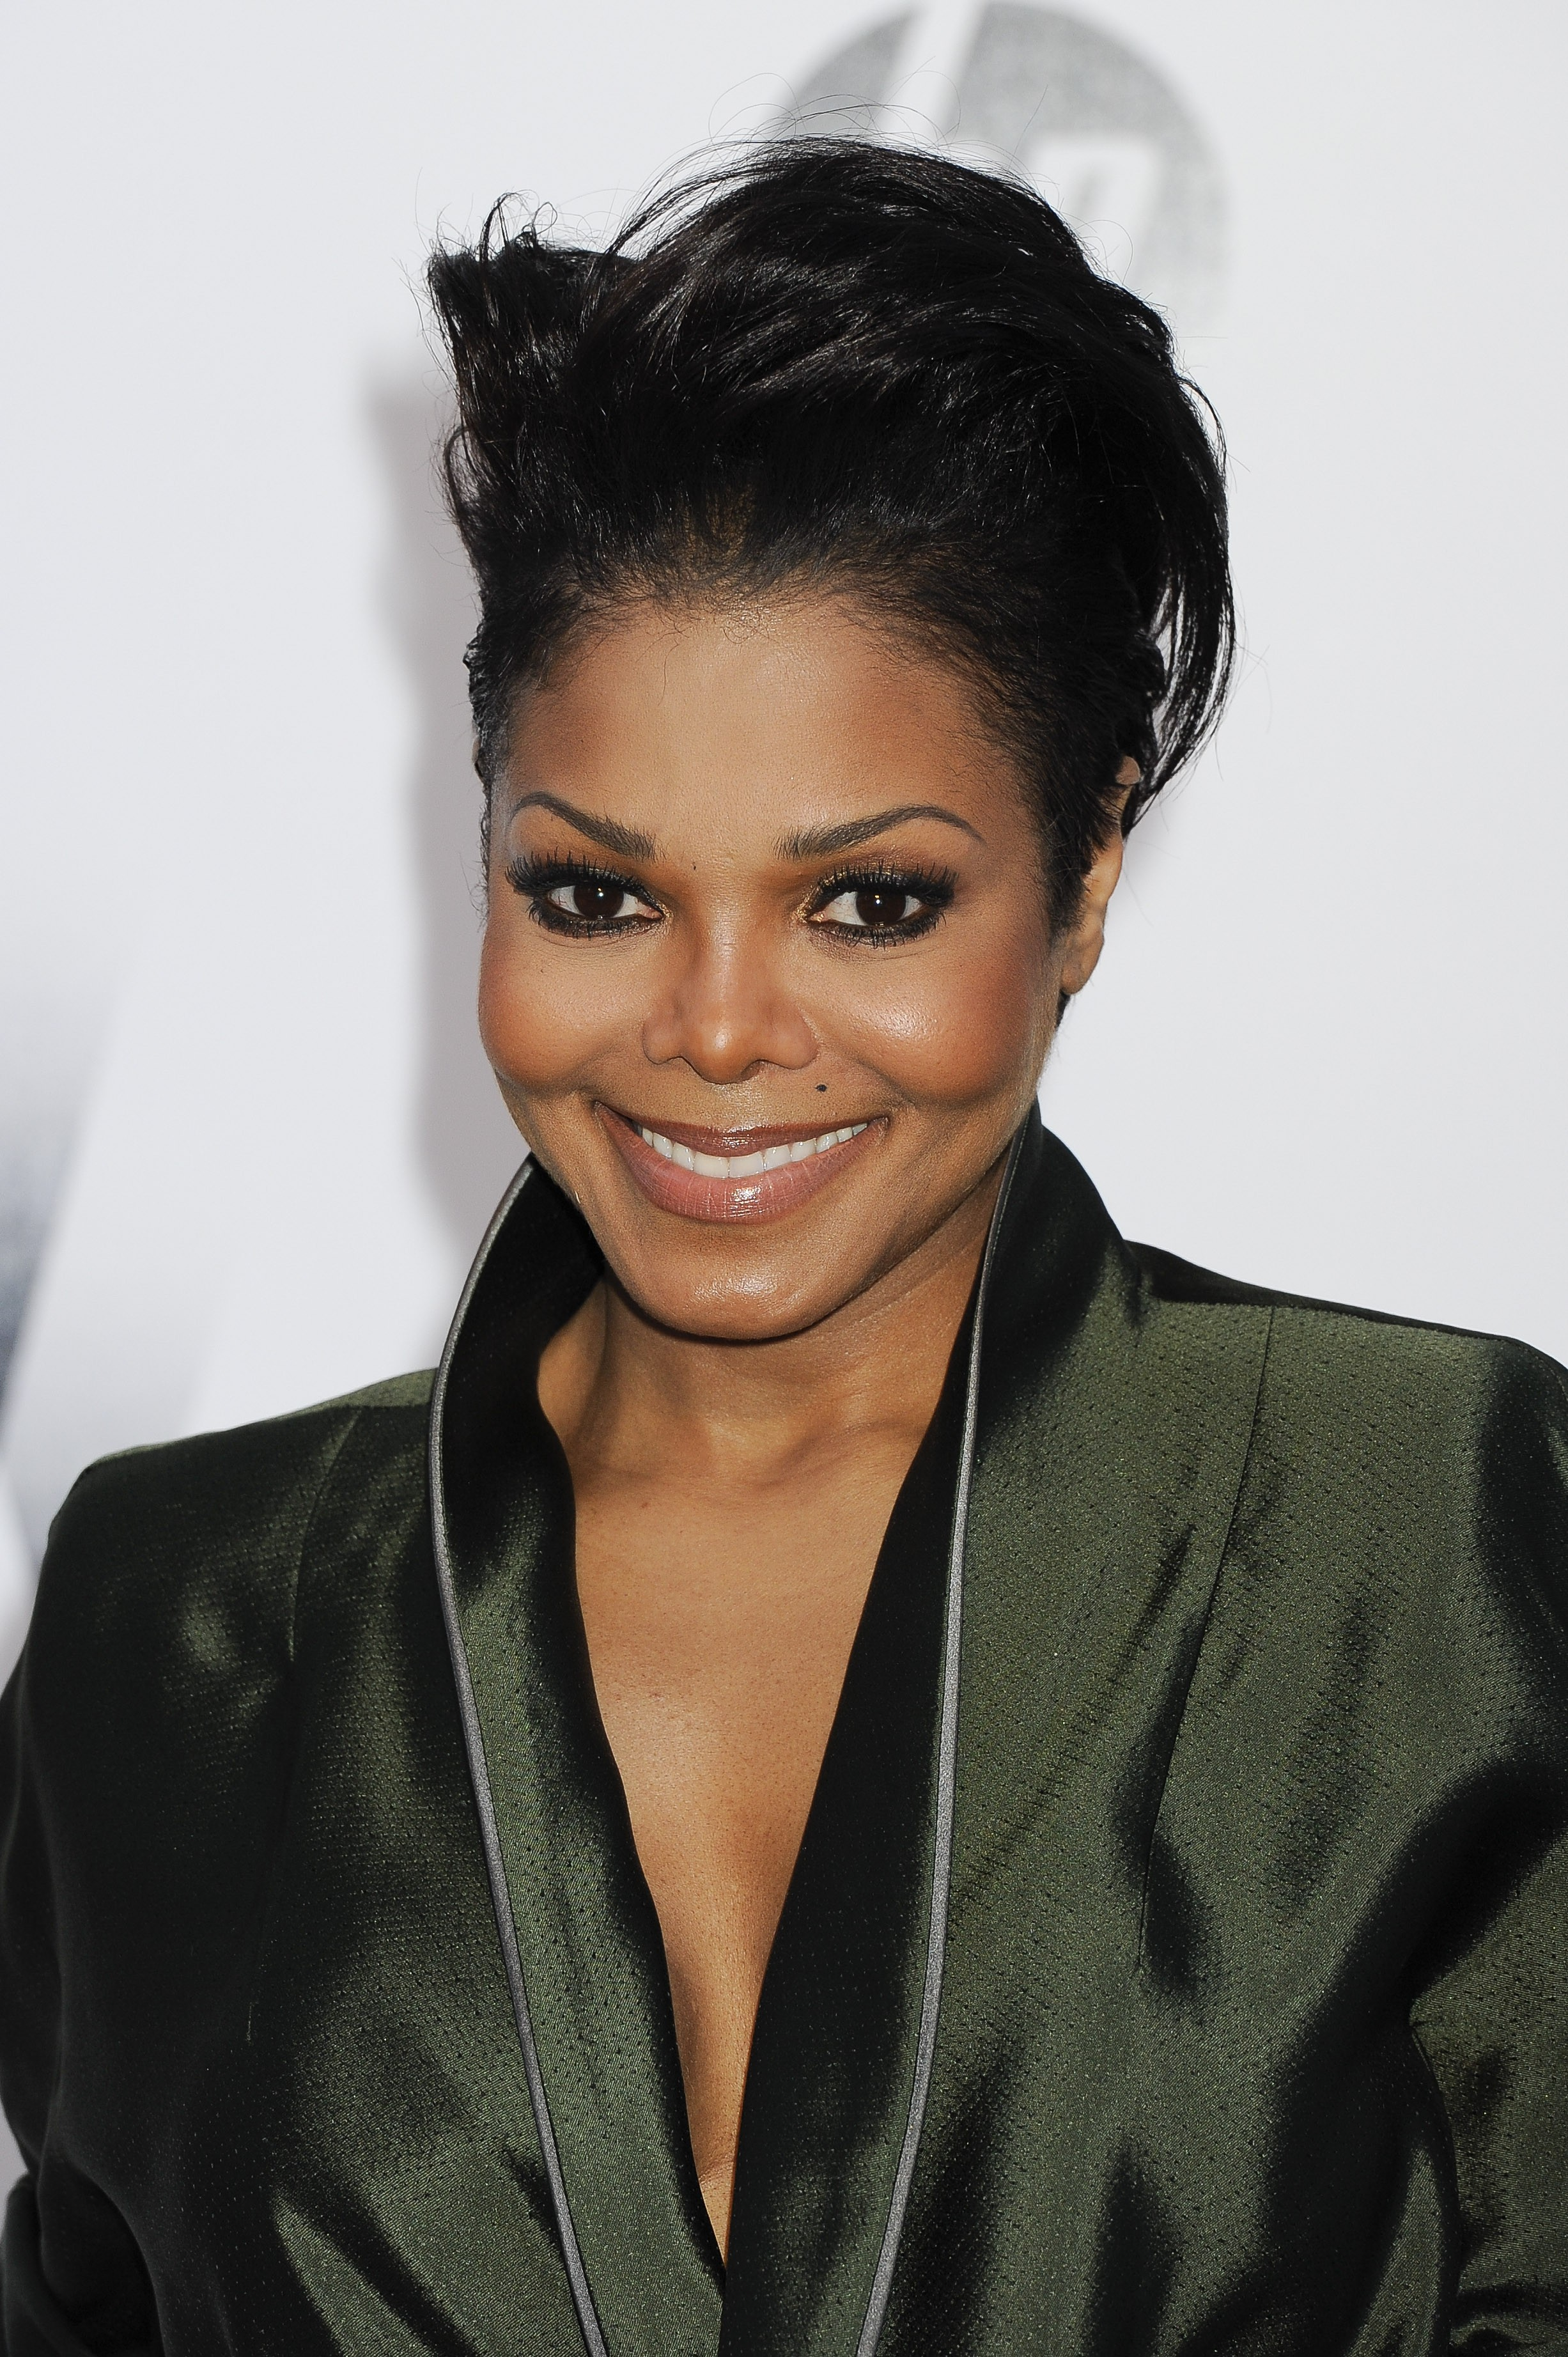 Singer Janet Jackson attending the amfAR Cinema Against during the 64th Cannes international film festival, in Cap d'Antibes, southern France, Thursday, May 19, 2011